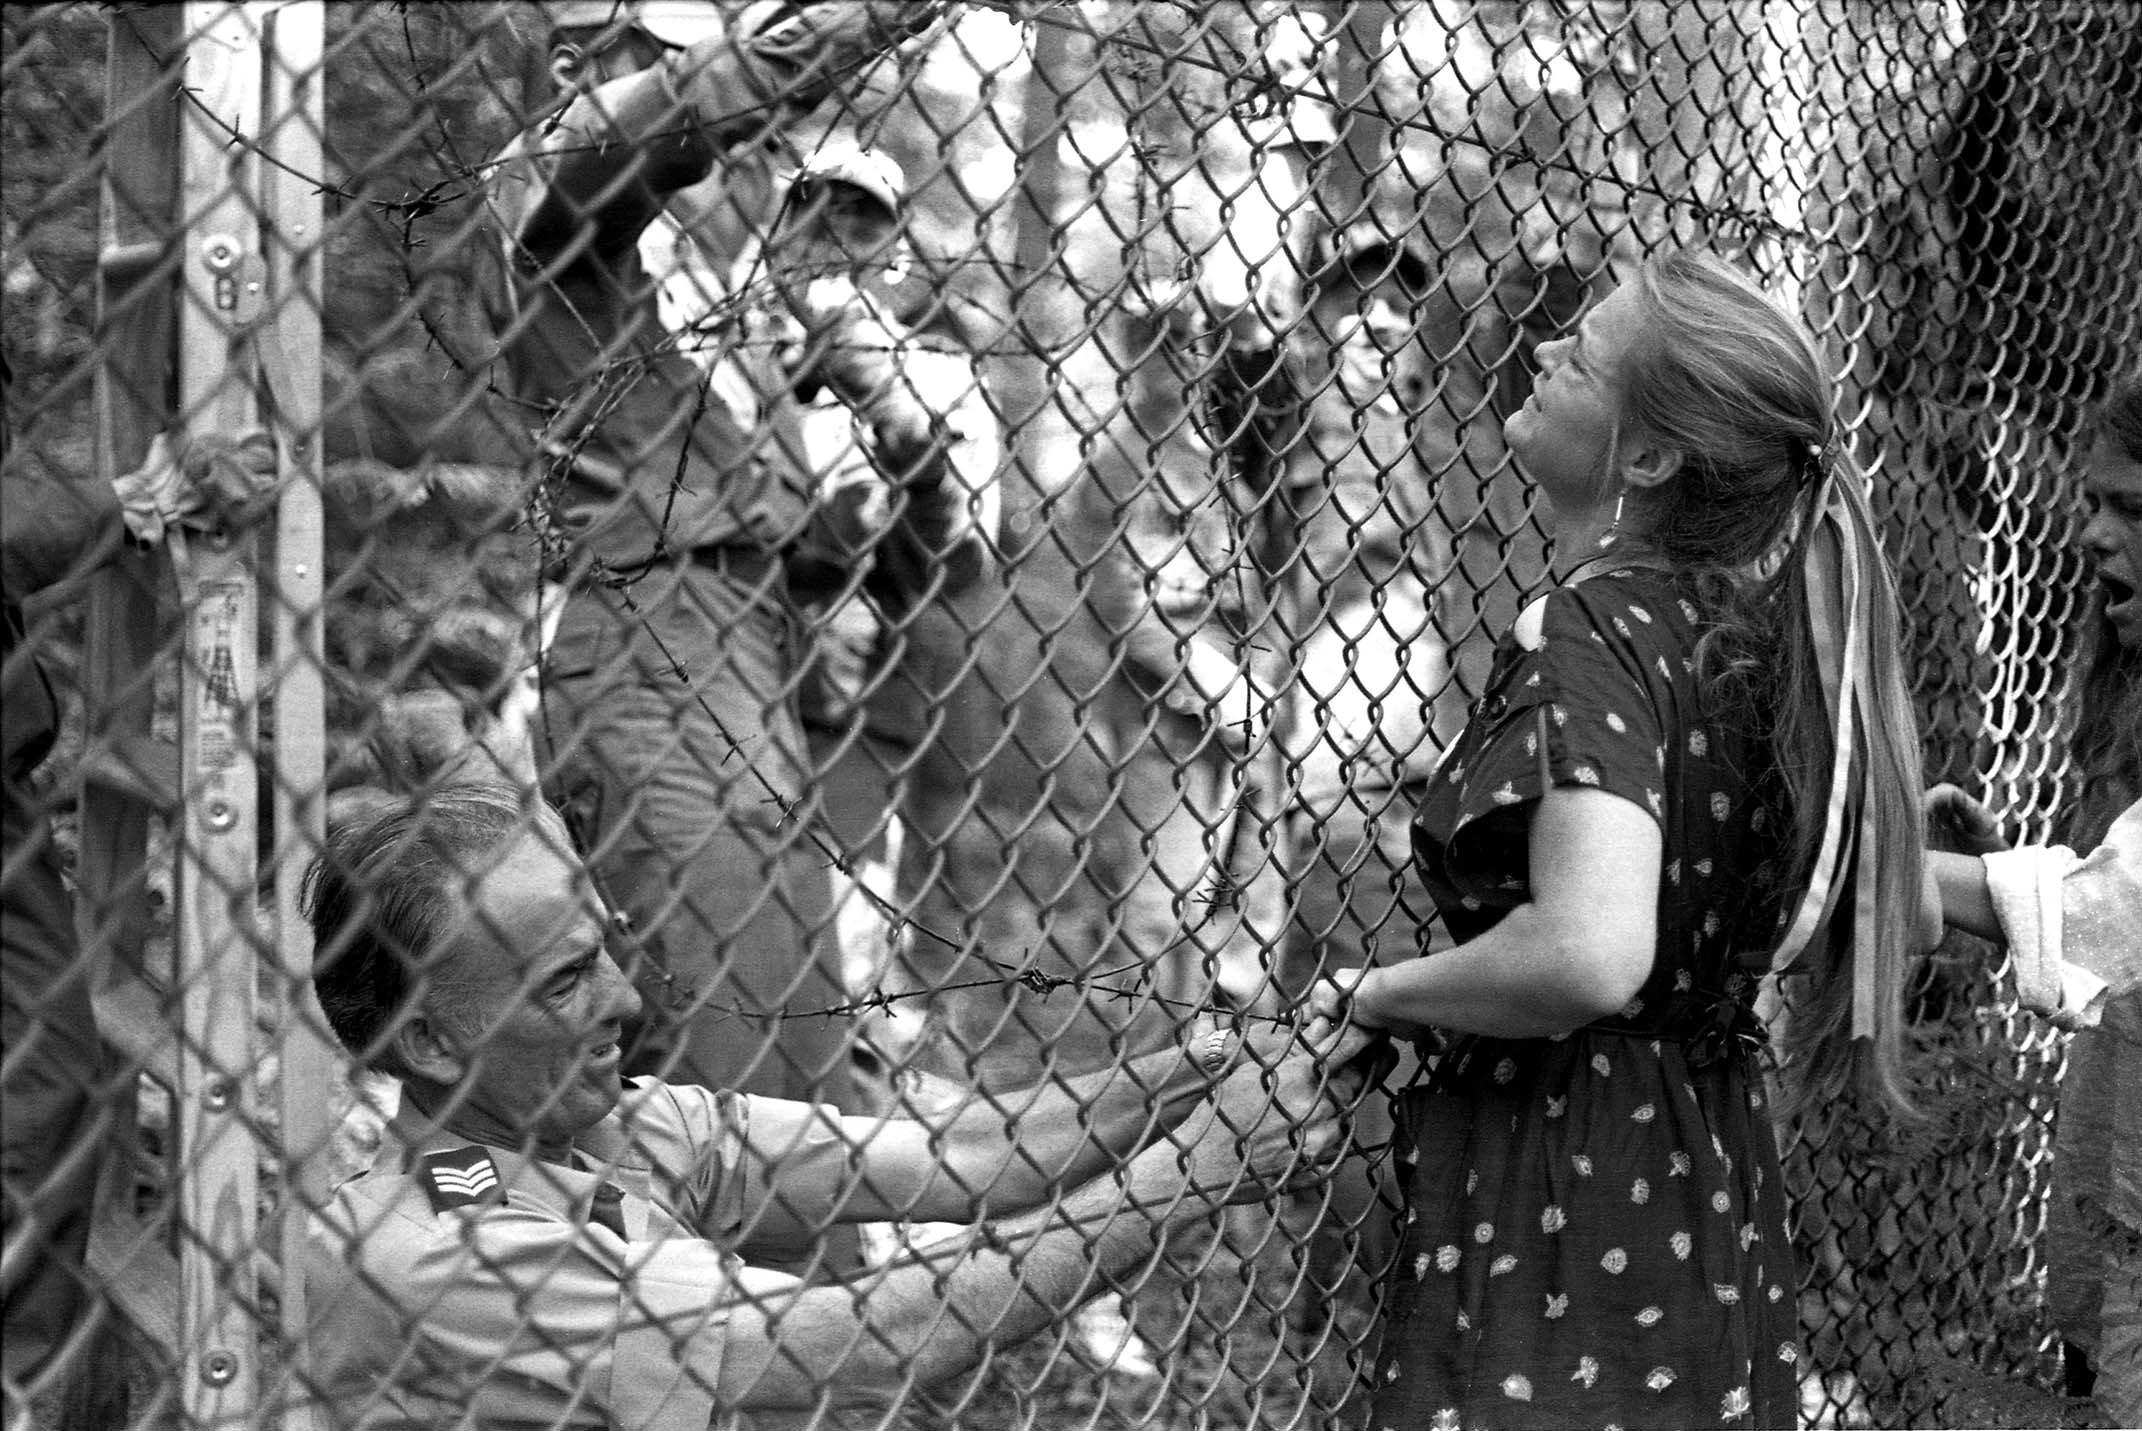 Dr Rebecca Johnson chains herself to the perimeter fence - a peaceful protest method routinely used at Greenham. Photograph by Edward Barber